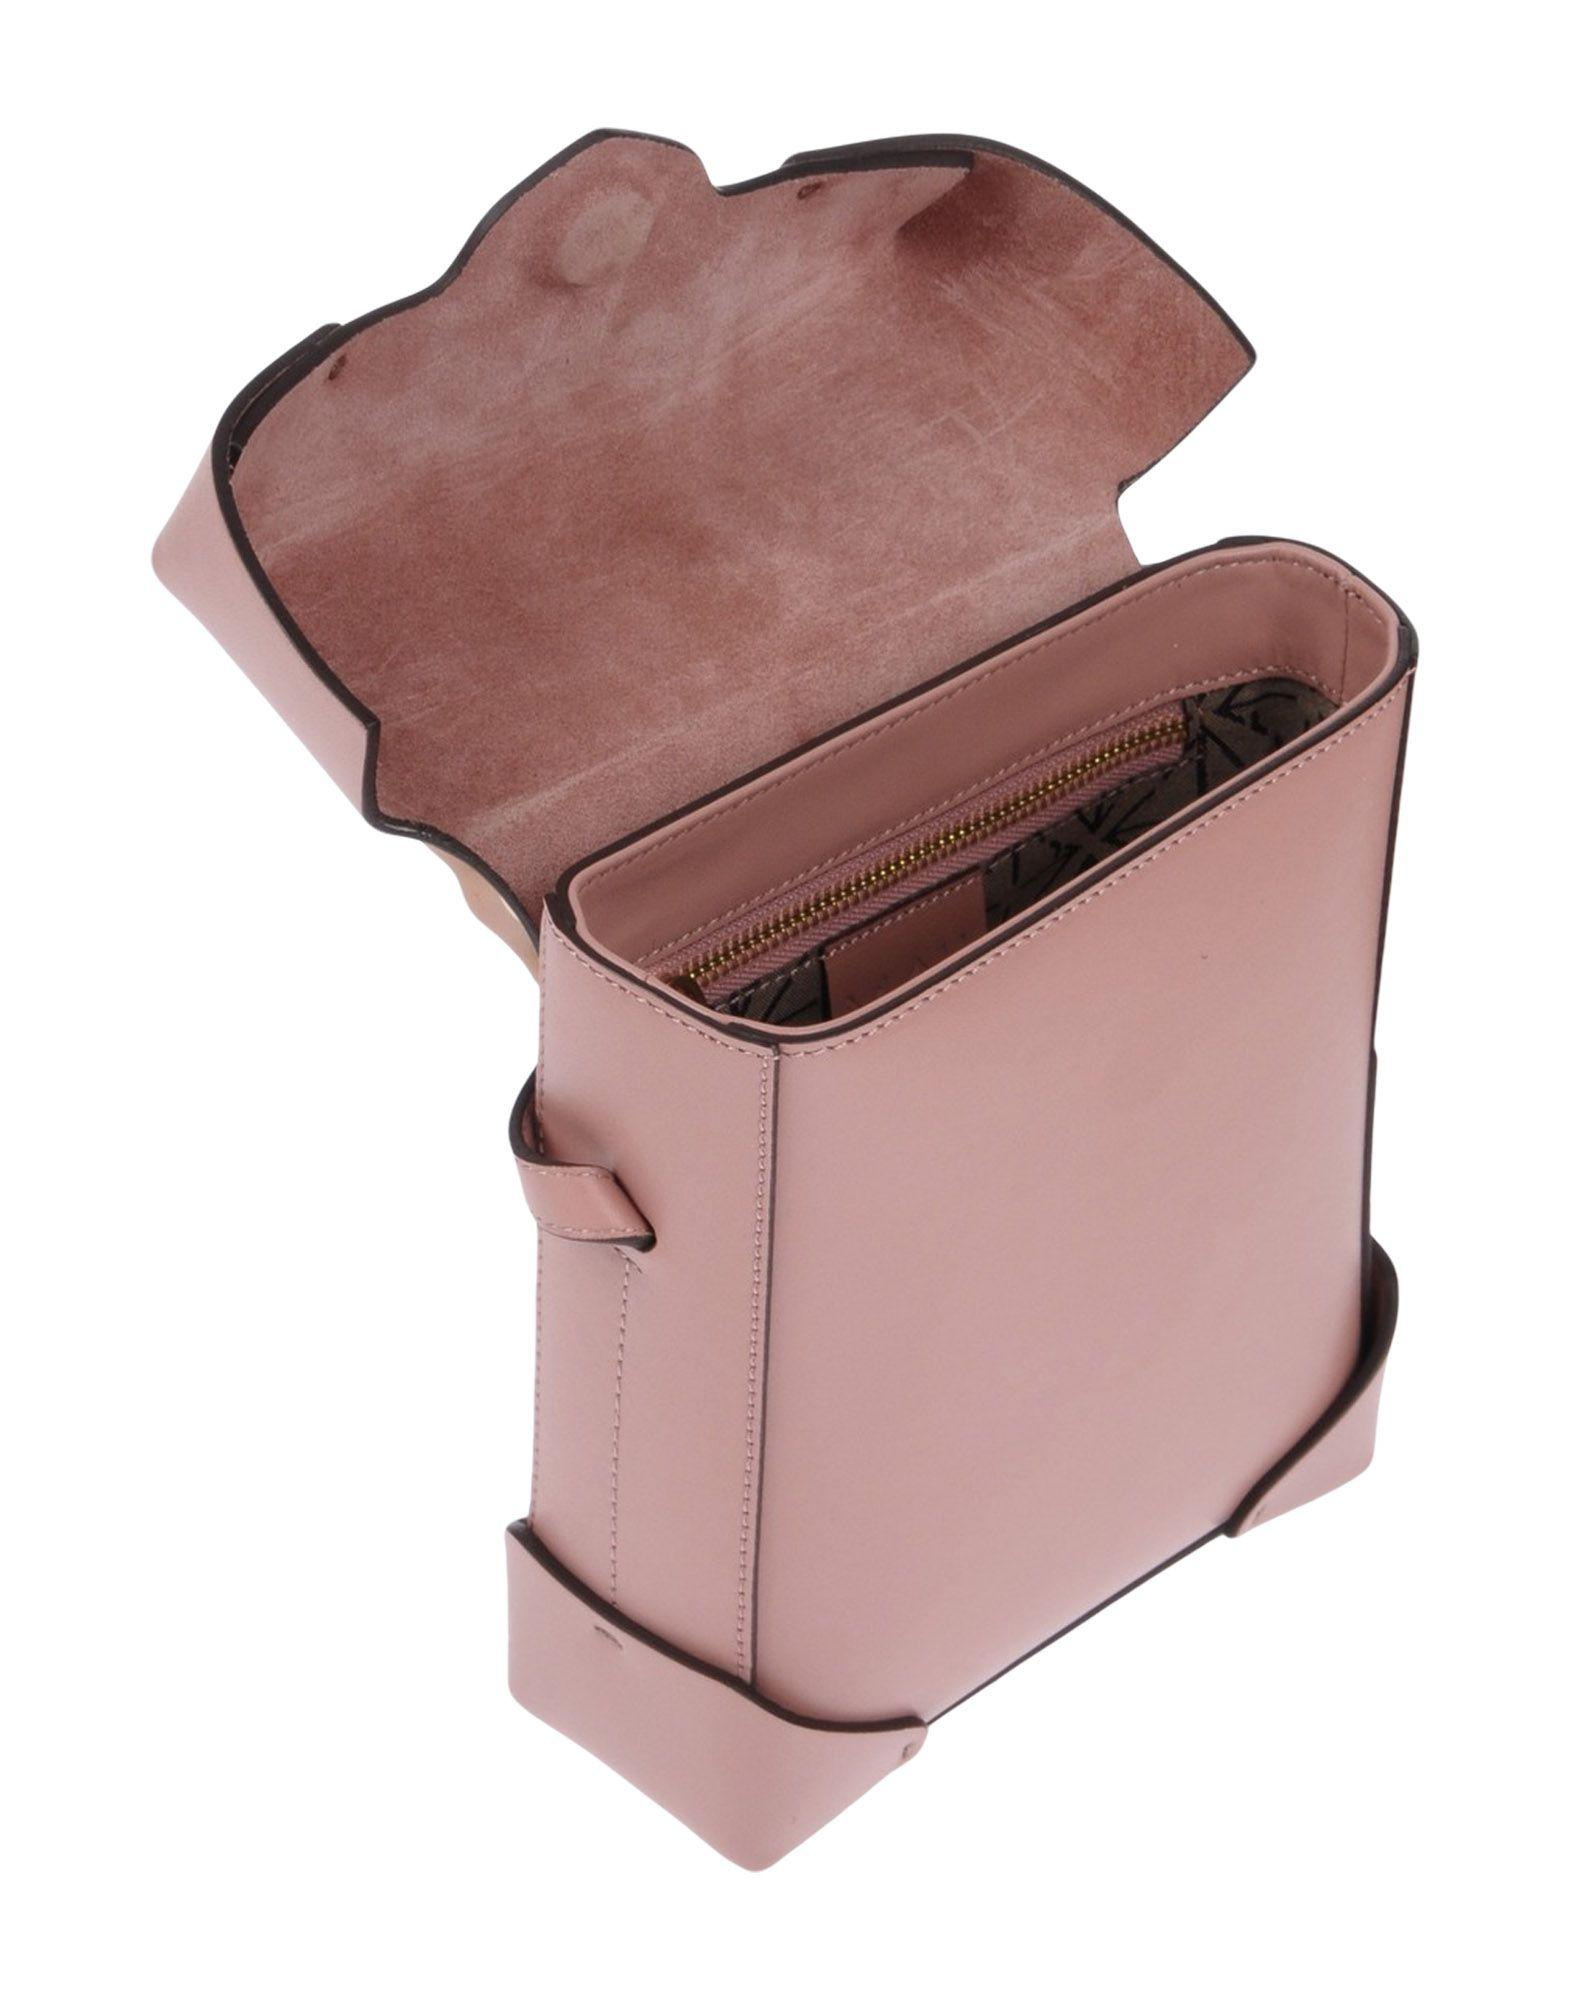 MANU Atelier Leather Cross-body Bag in Pastel Pink (Pink)